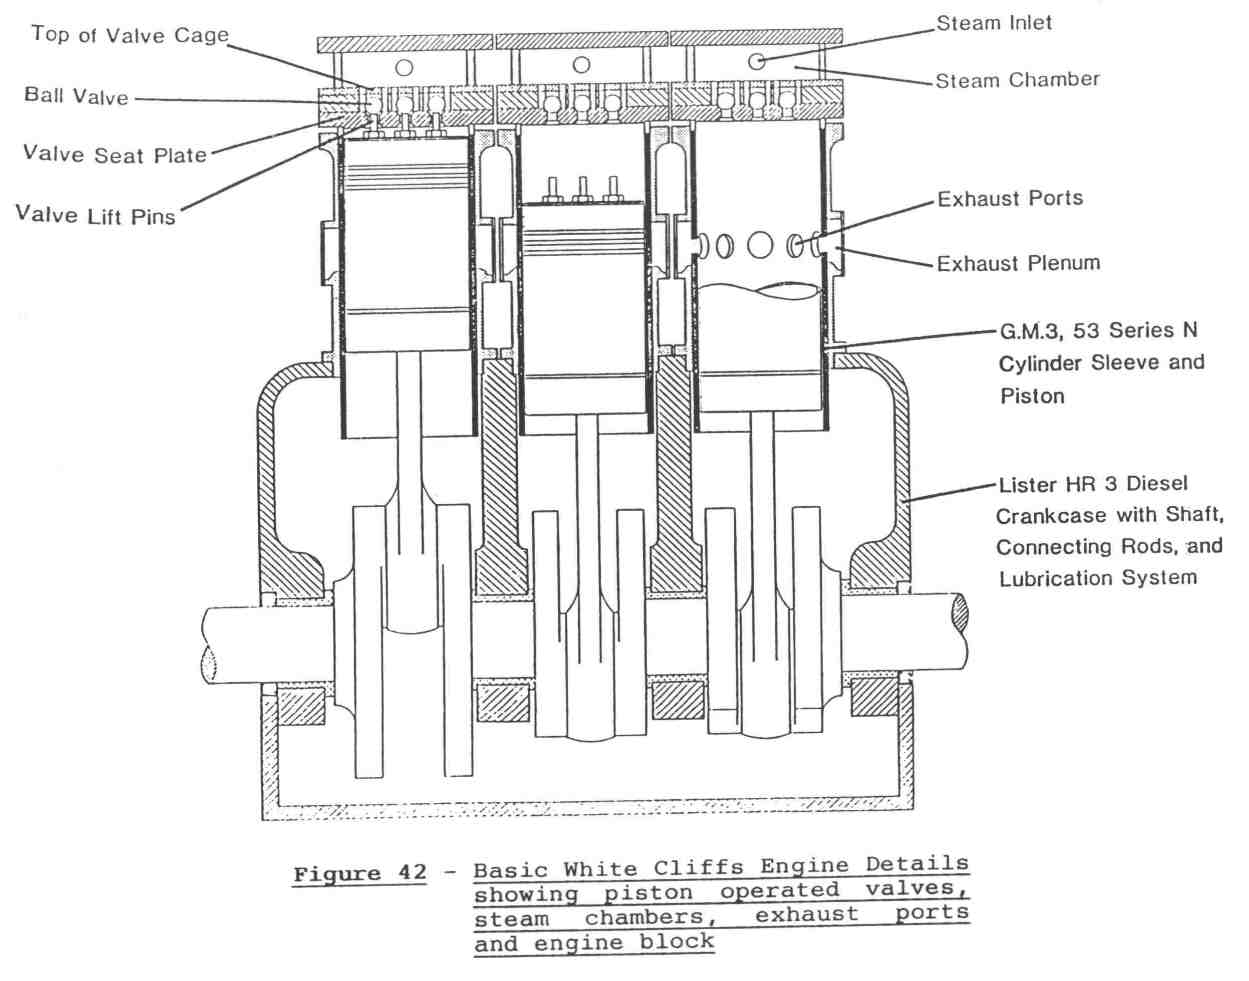 hight resolution of figure 42 basic white cliffs engine details showing piston operated valves steam chambers